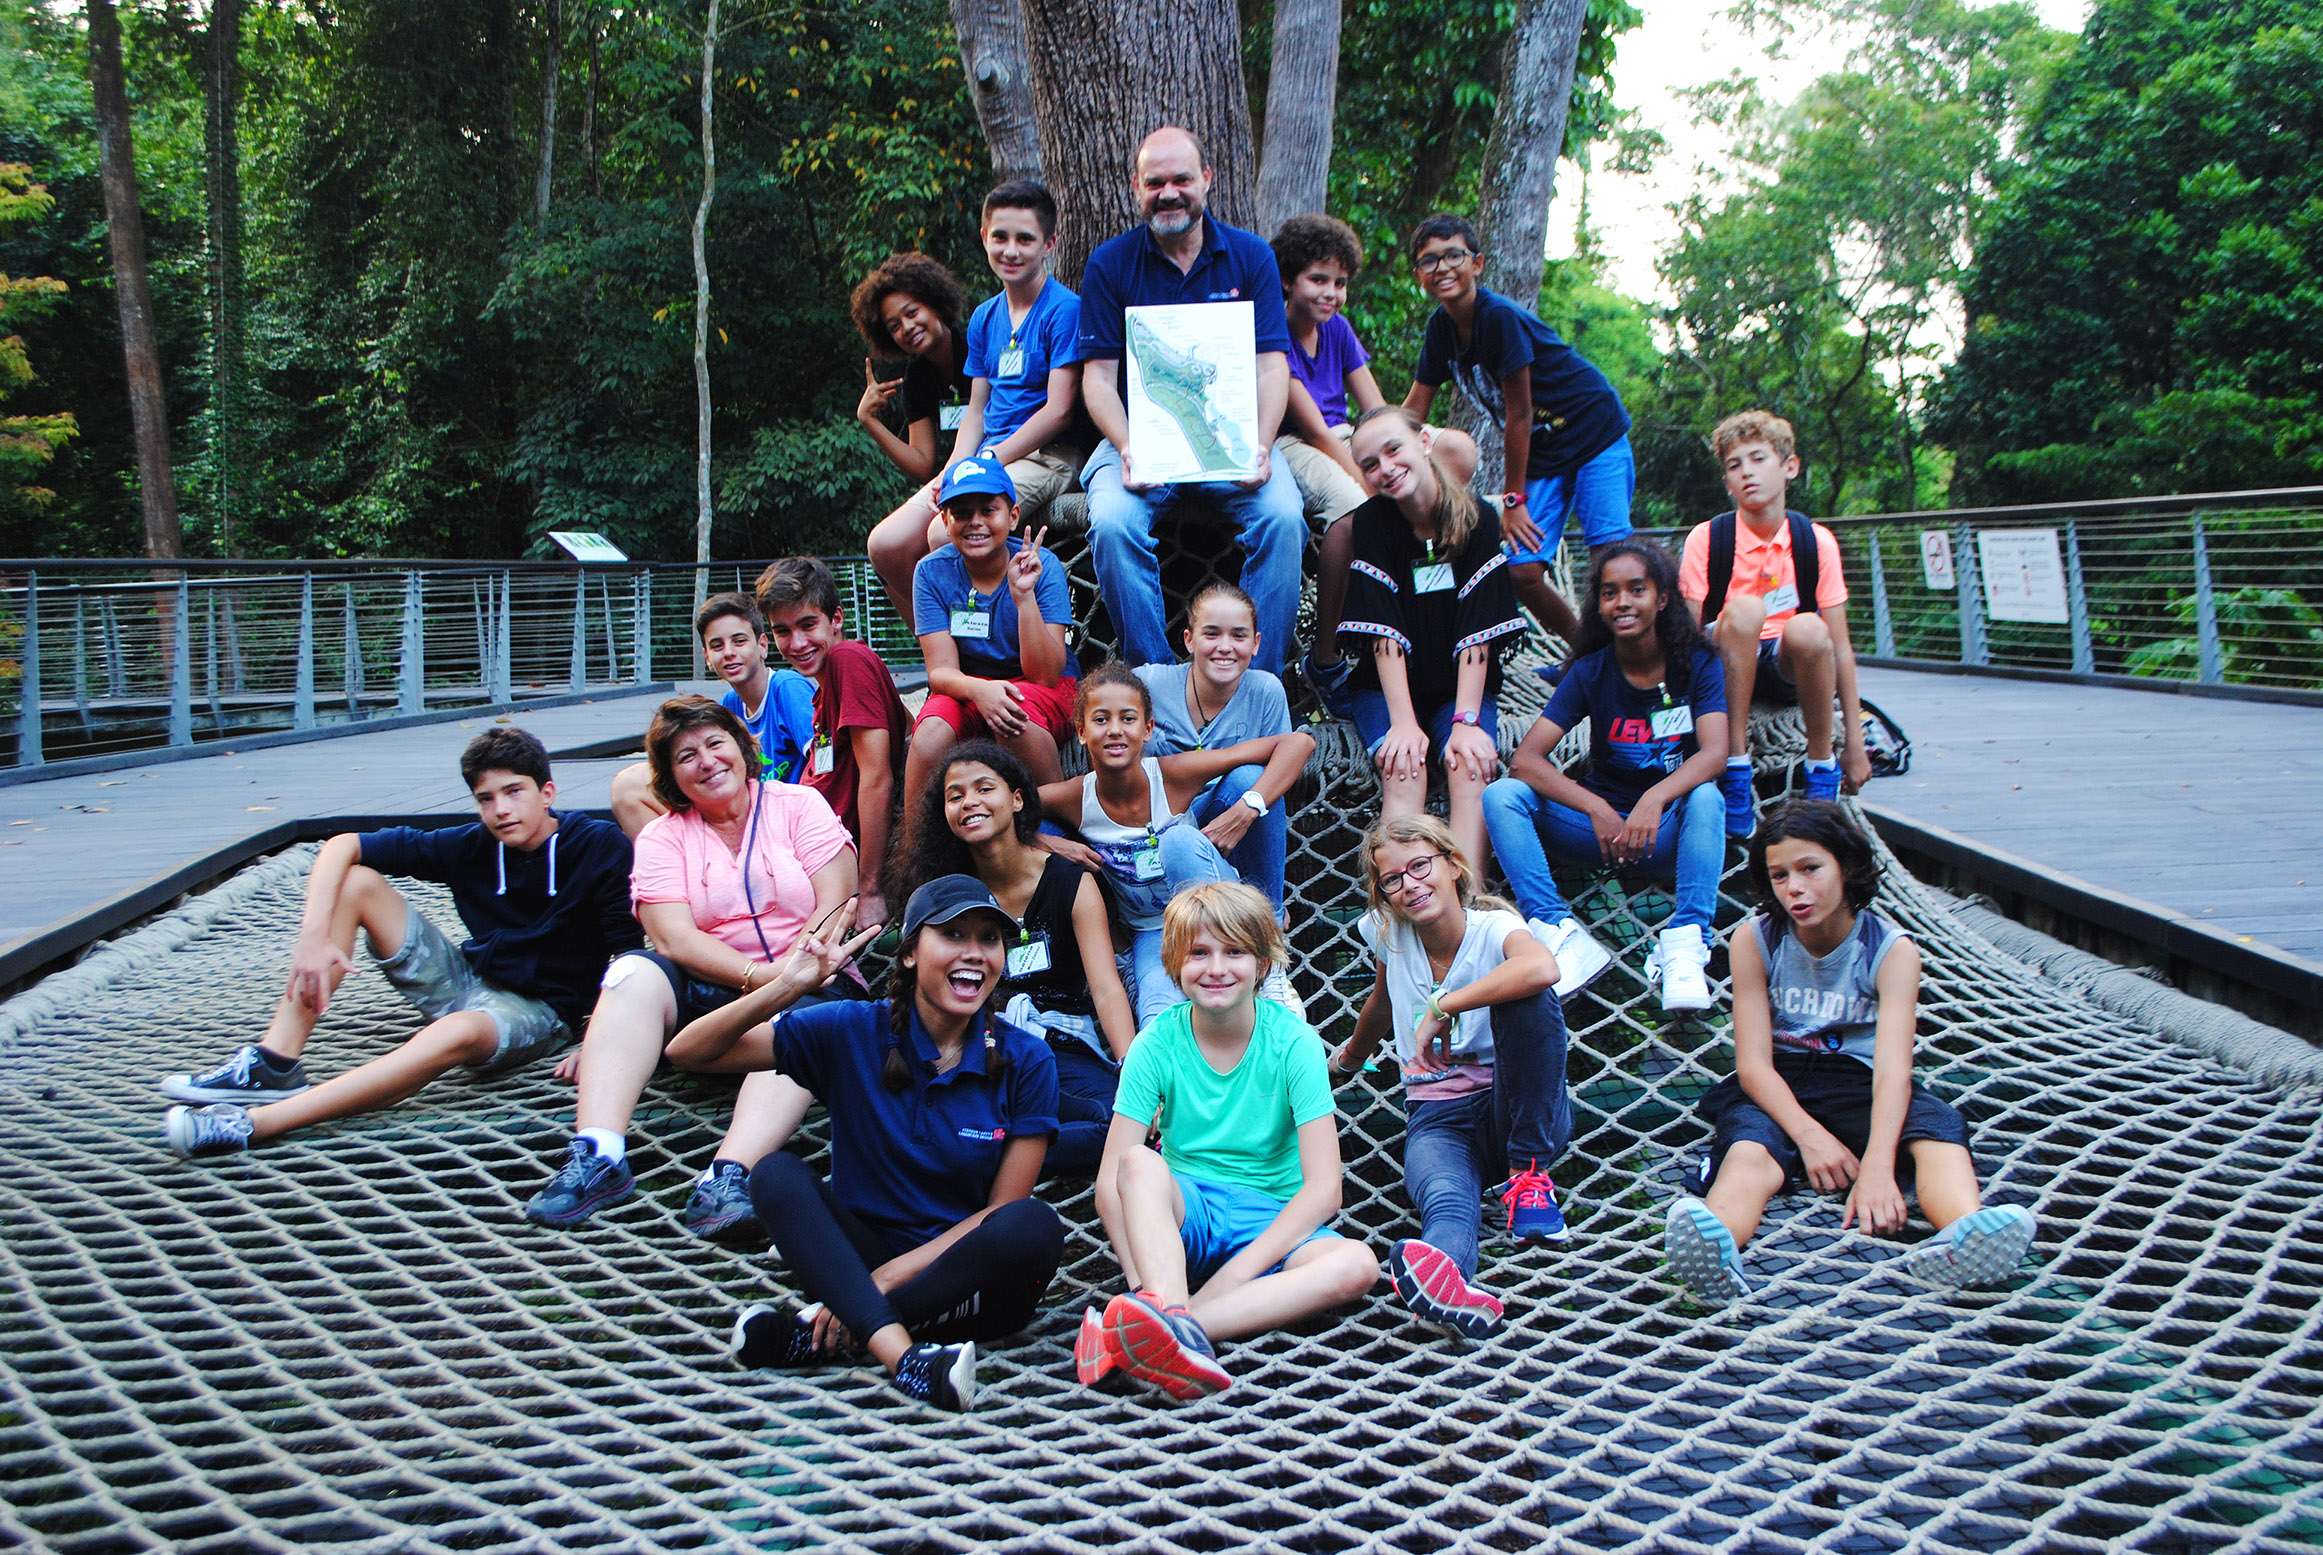 Group photo on the Canopy Web at the SPH Walk of Giants - Photo by Nicolas